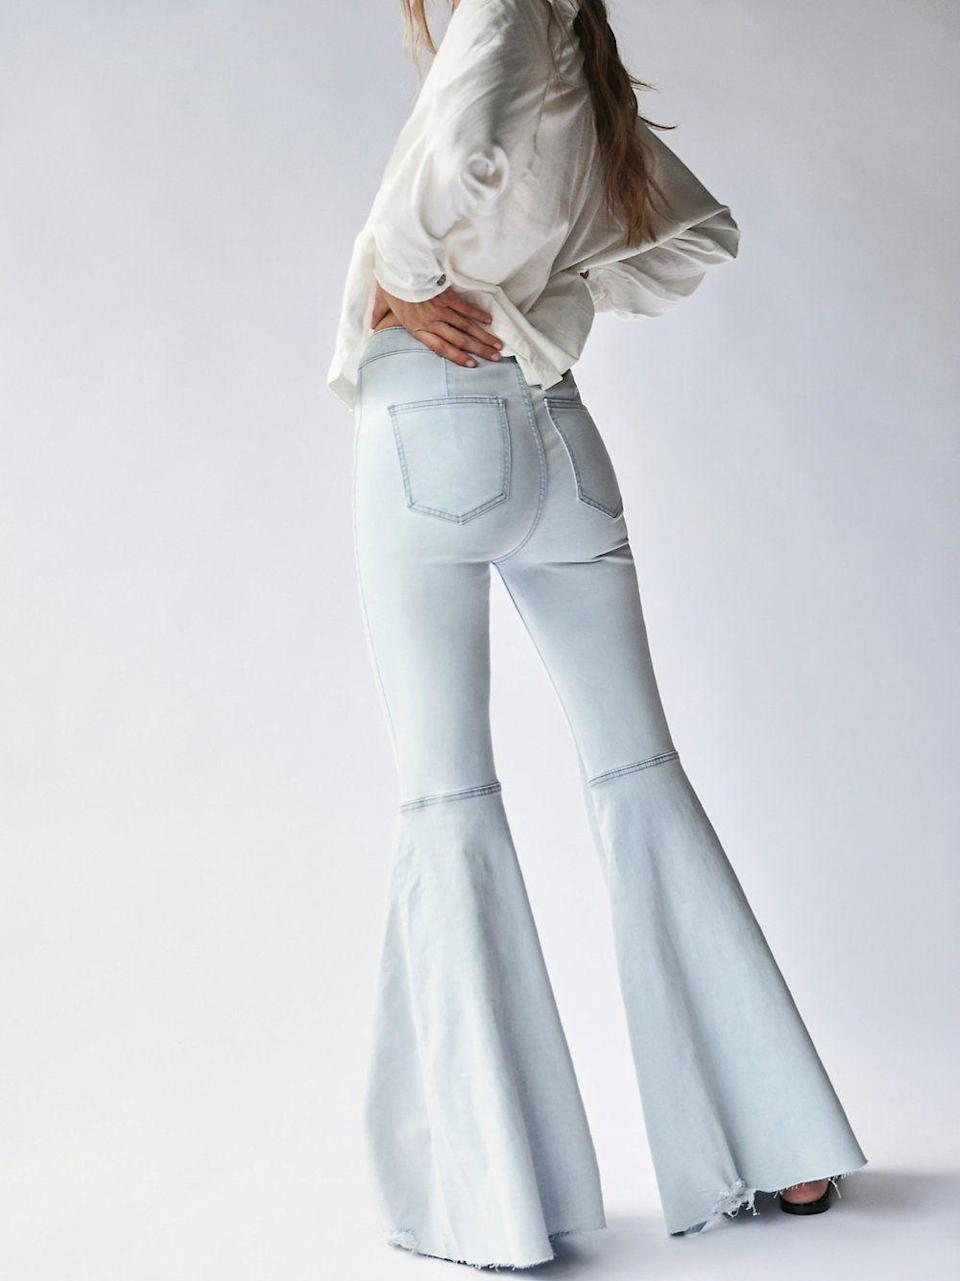 """<p><strong>Free People</strong></p><p>freepeople.com</p><p><strong>$78.00</strong></p><p><a href=""""https://go.redirectingat.com?id=74968X1596630&url=https%3A%2F%2Fwww.freepeople.com%2Fshop%2Fjust-float-on-flare-jeans%2F&sref=https%3A%2F%2Fwww.goodhousekeeping.com%2Fholidays%2Fhalloween-ideas%2Fg27952017%2Fbest-hippie-halloween-costume-ideas%2F"""" rel=""""nofollow noopener"""" target=""""_blank"""" data-ylk=""""slk:Shop Now"""" class=""""link rapid-noclick-resp"""">Shop Now</a></p><p>If you're a fan of the bell bottom jeans look, try this stylish 2020 update. Save them for after Halloween, because they're cute enough to wear all year.</p>"""